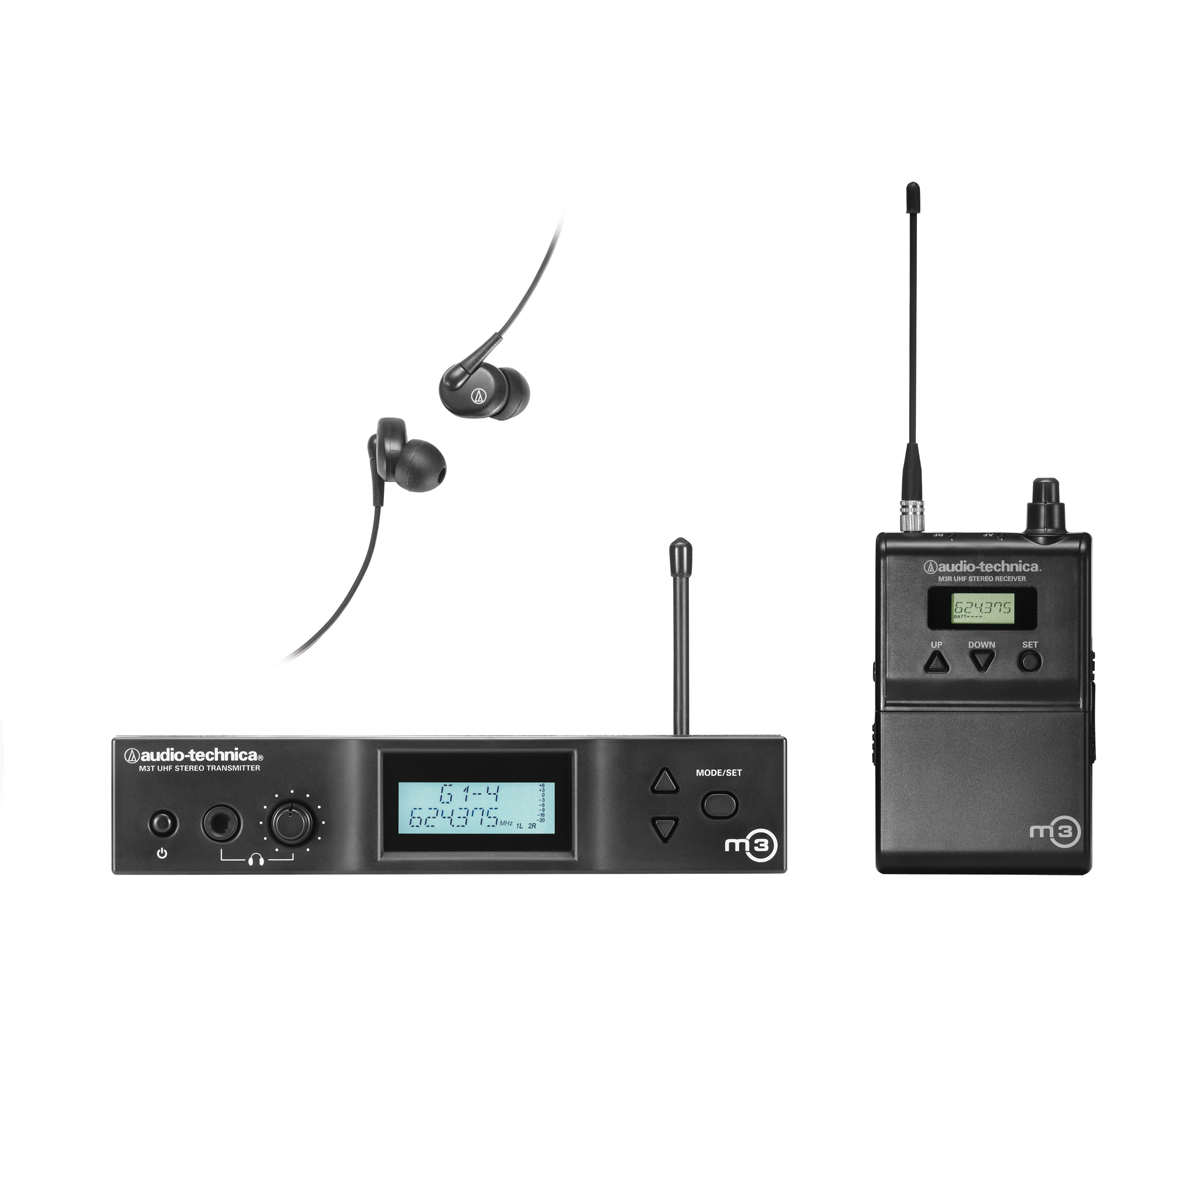 audio technica m3 wireless in ear monitor system. Black Bedroom Furniture Sets. Home Design Ideas